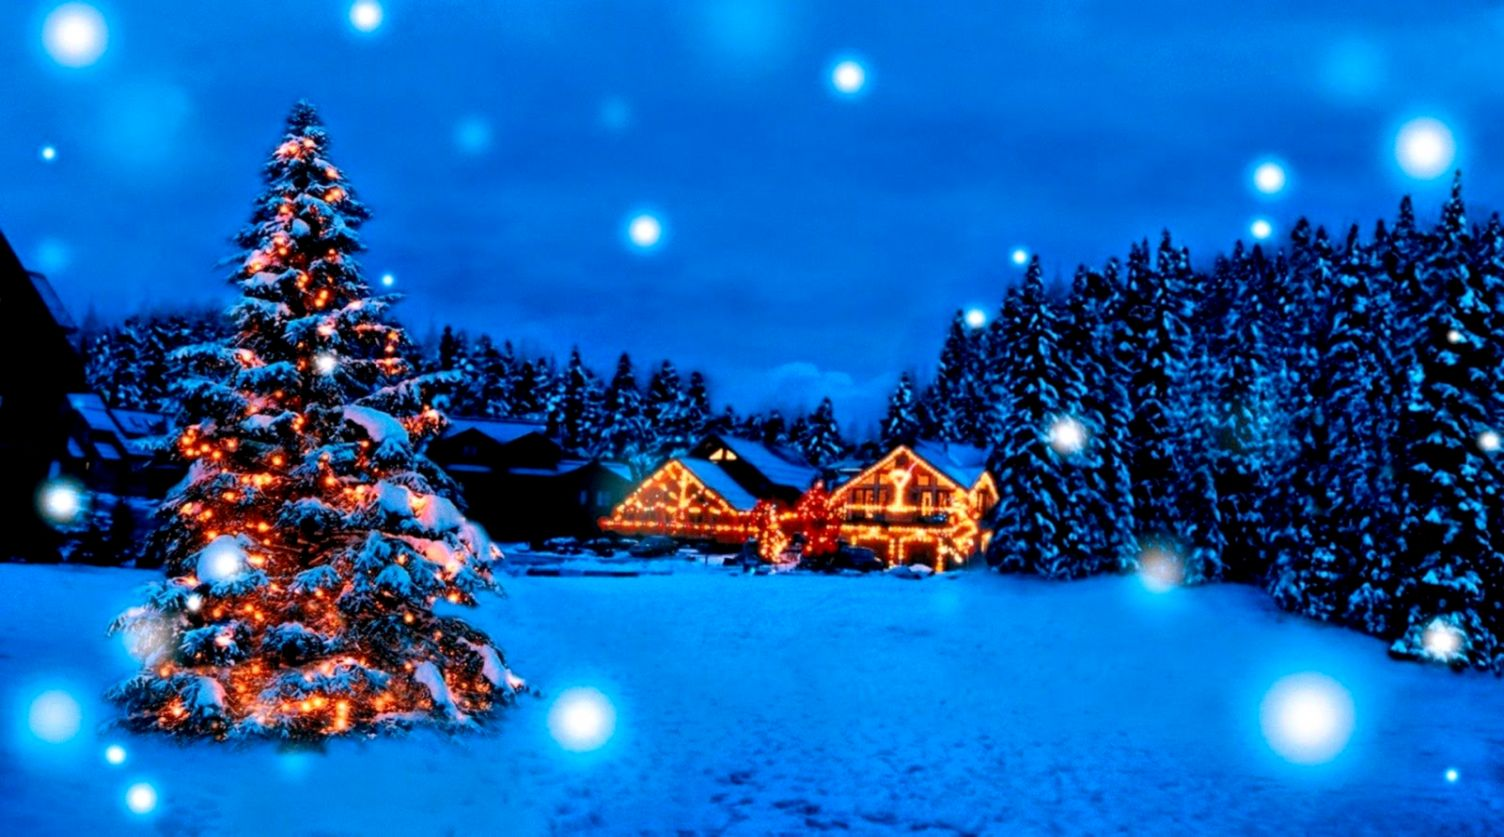 Pleasing Hd Xmas Desktop Wallpaper Wallpapers App Home Interior And Landscaping Palasignezvosmurscom